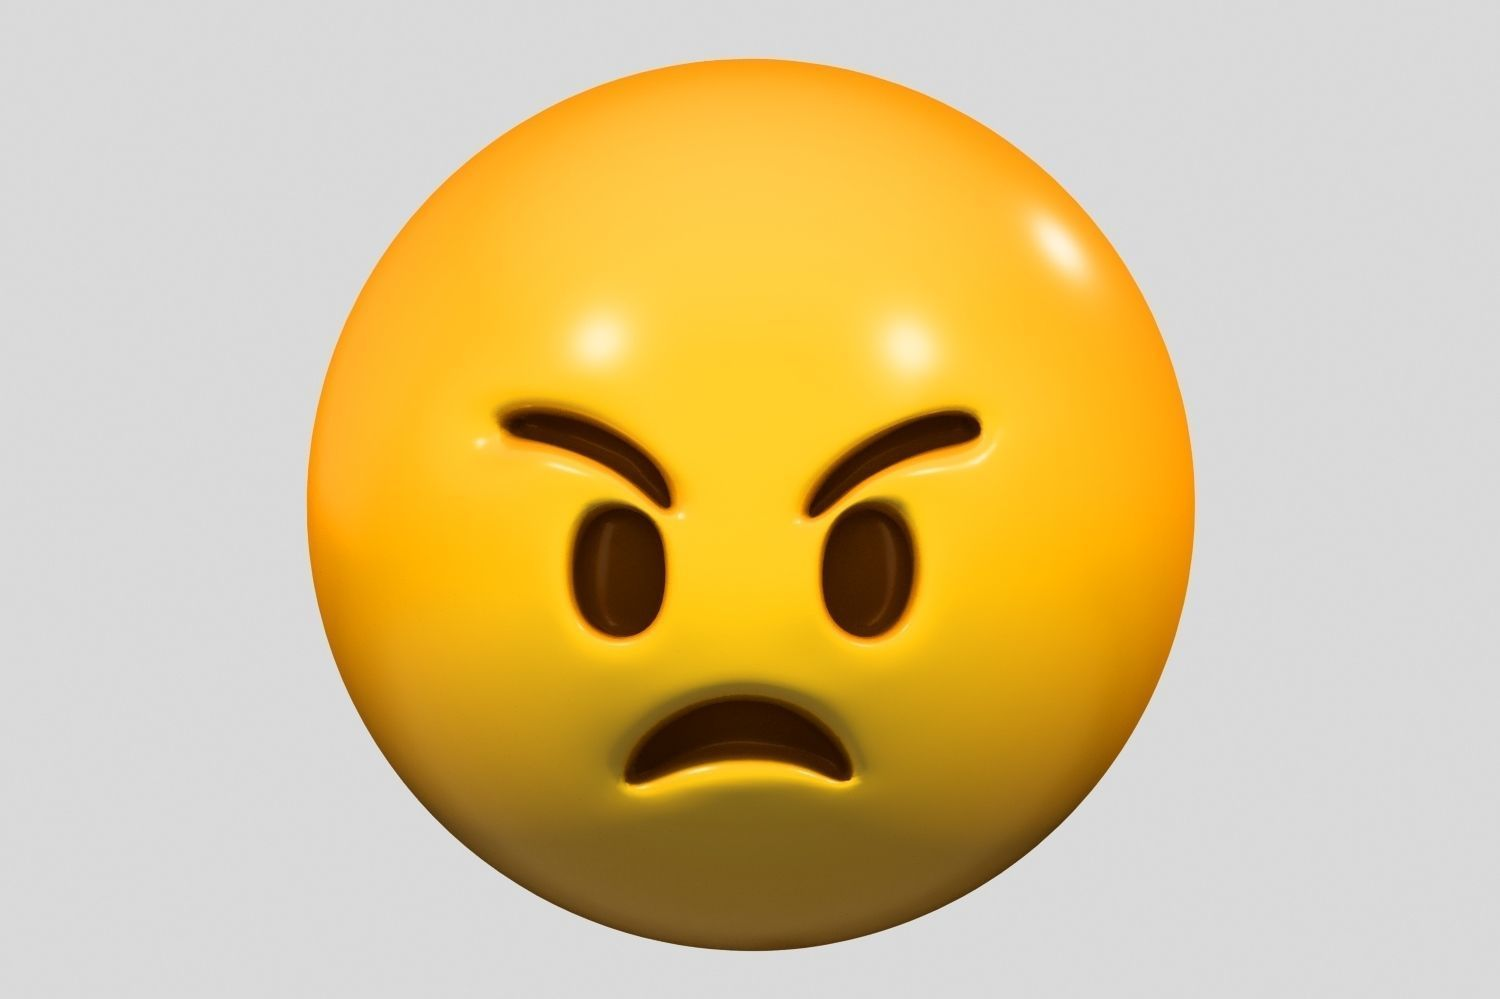 Emoji Angry Face